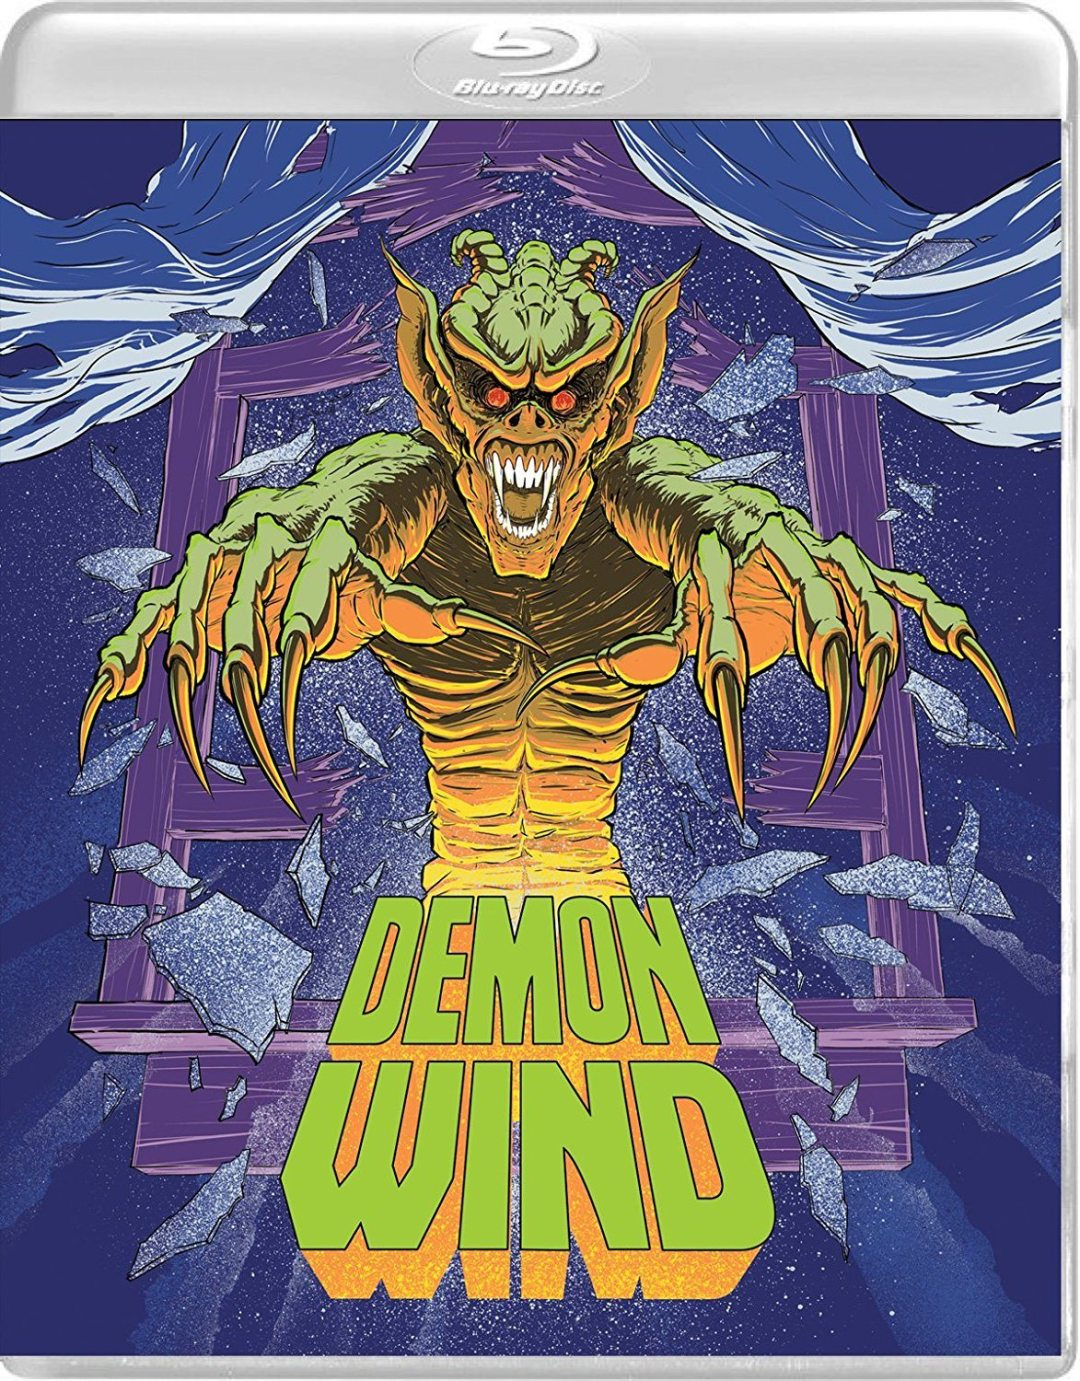 Demon Wind – Blu-ray/DVD Review